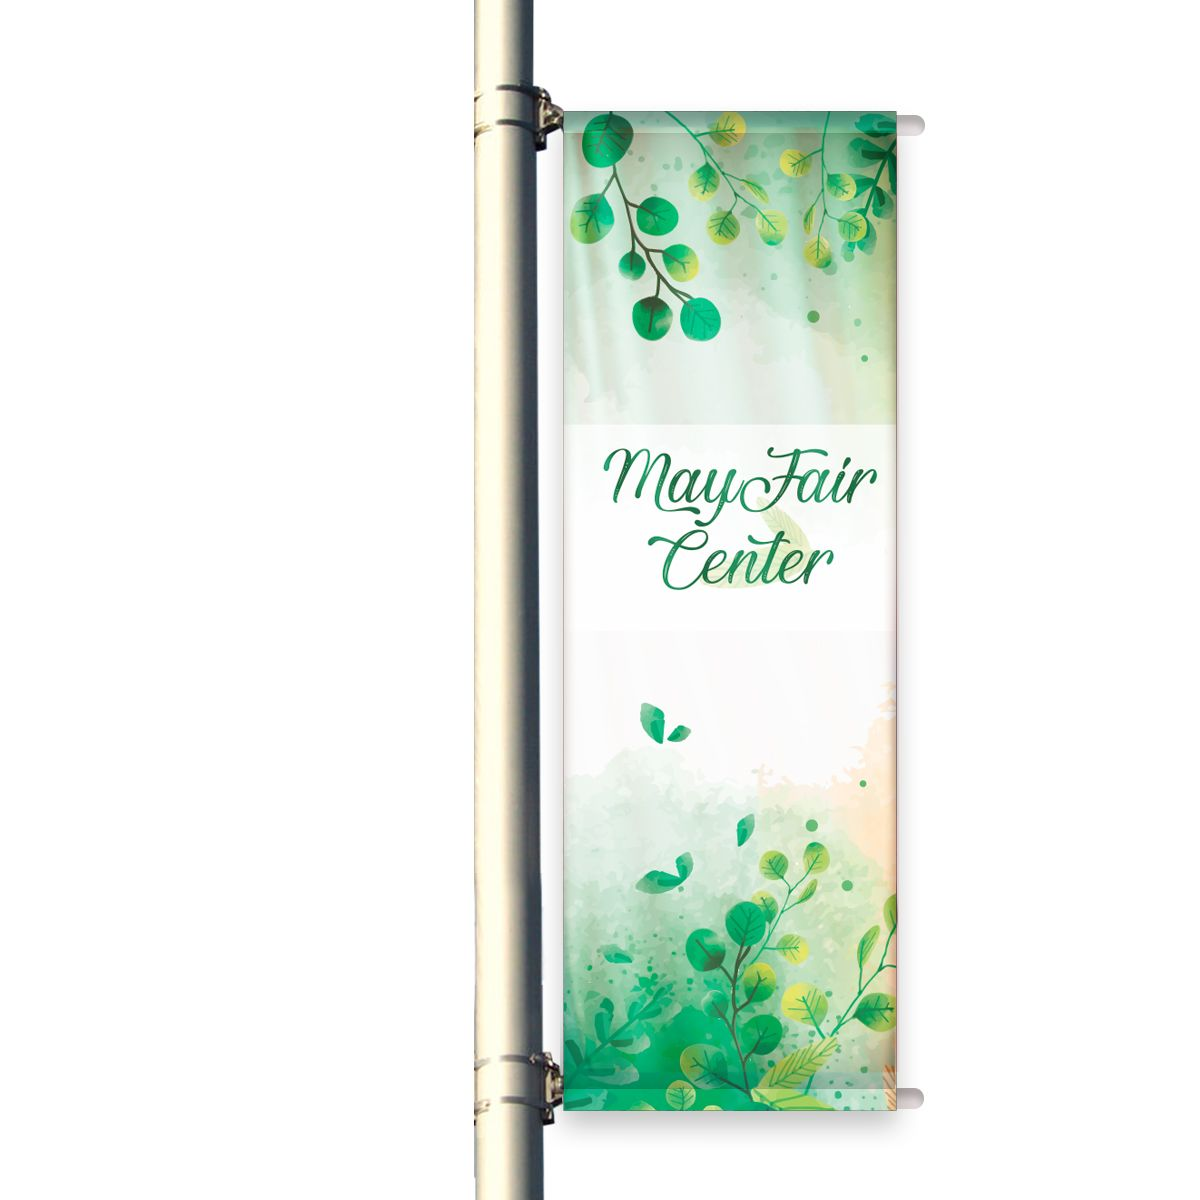 Advertising Store Museum Now Open 13 oz Heavy Duty Vinyl Banner Sign with Metal Grommets Flag, Many Sizes Available New